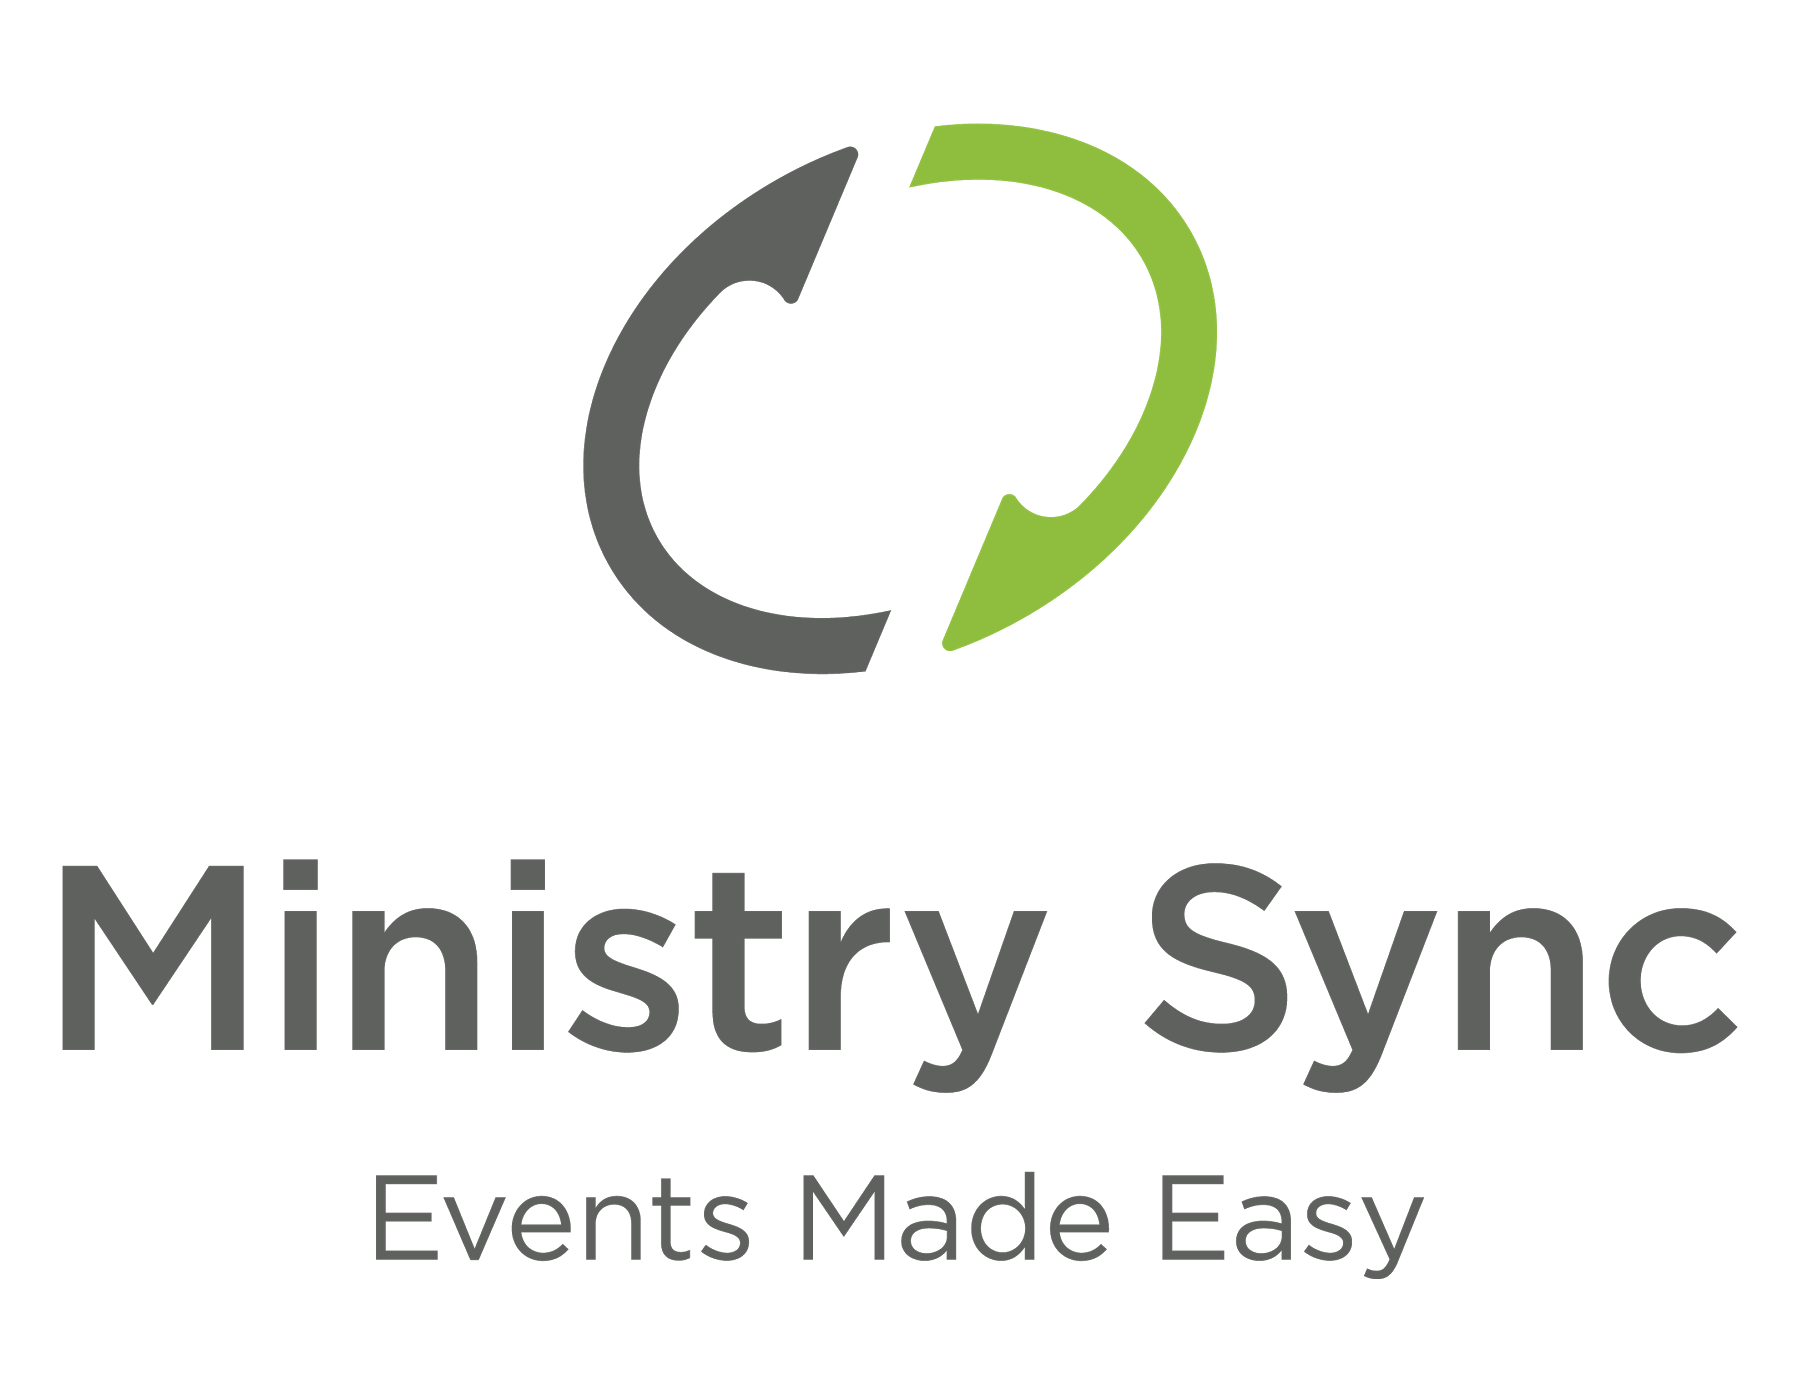 Ministry Sync Blog